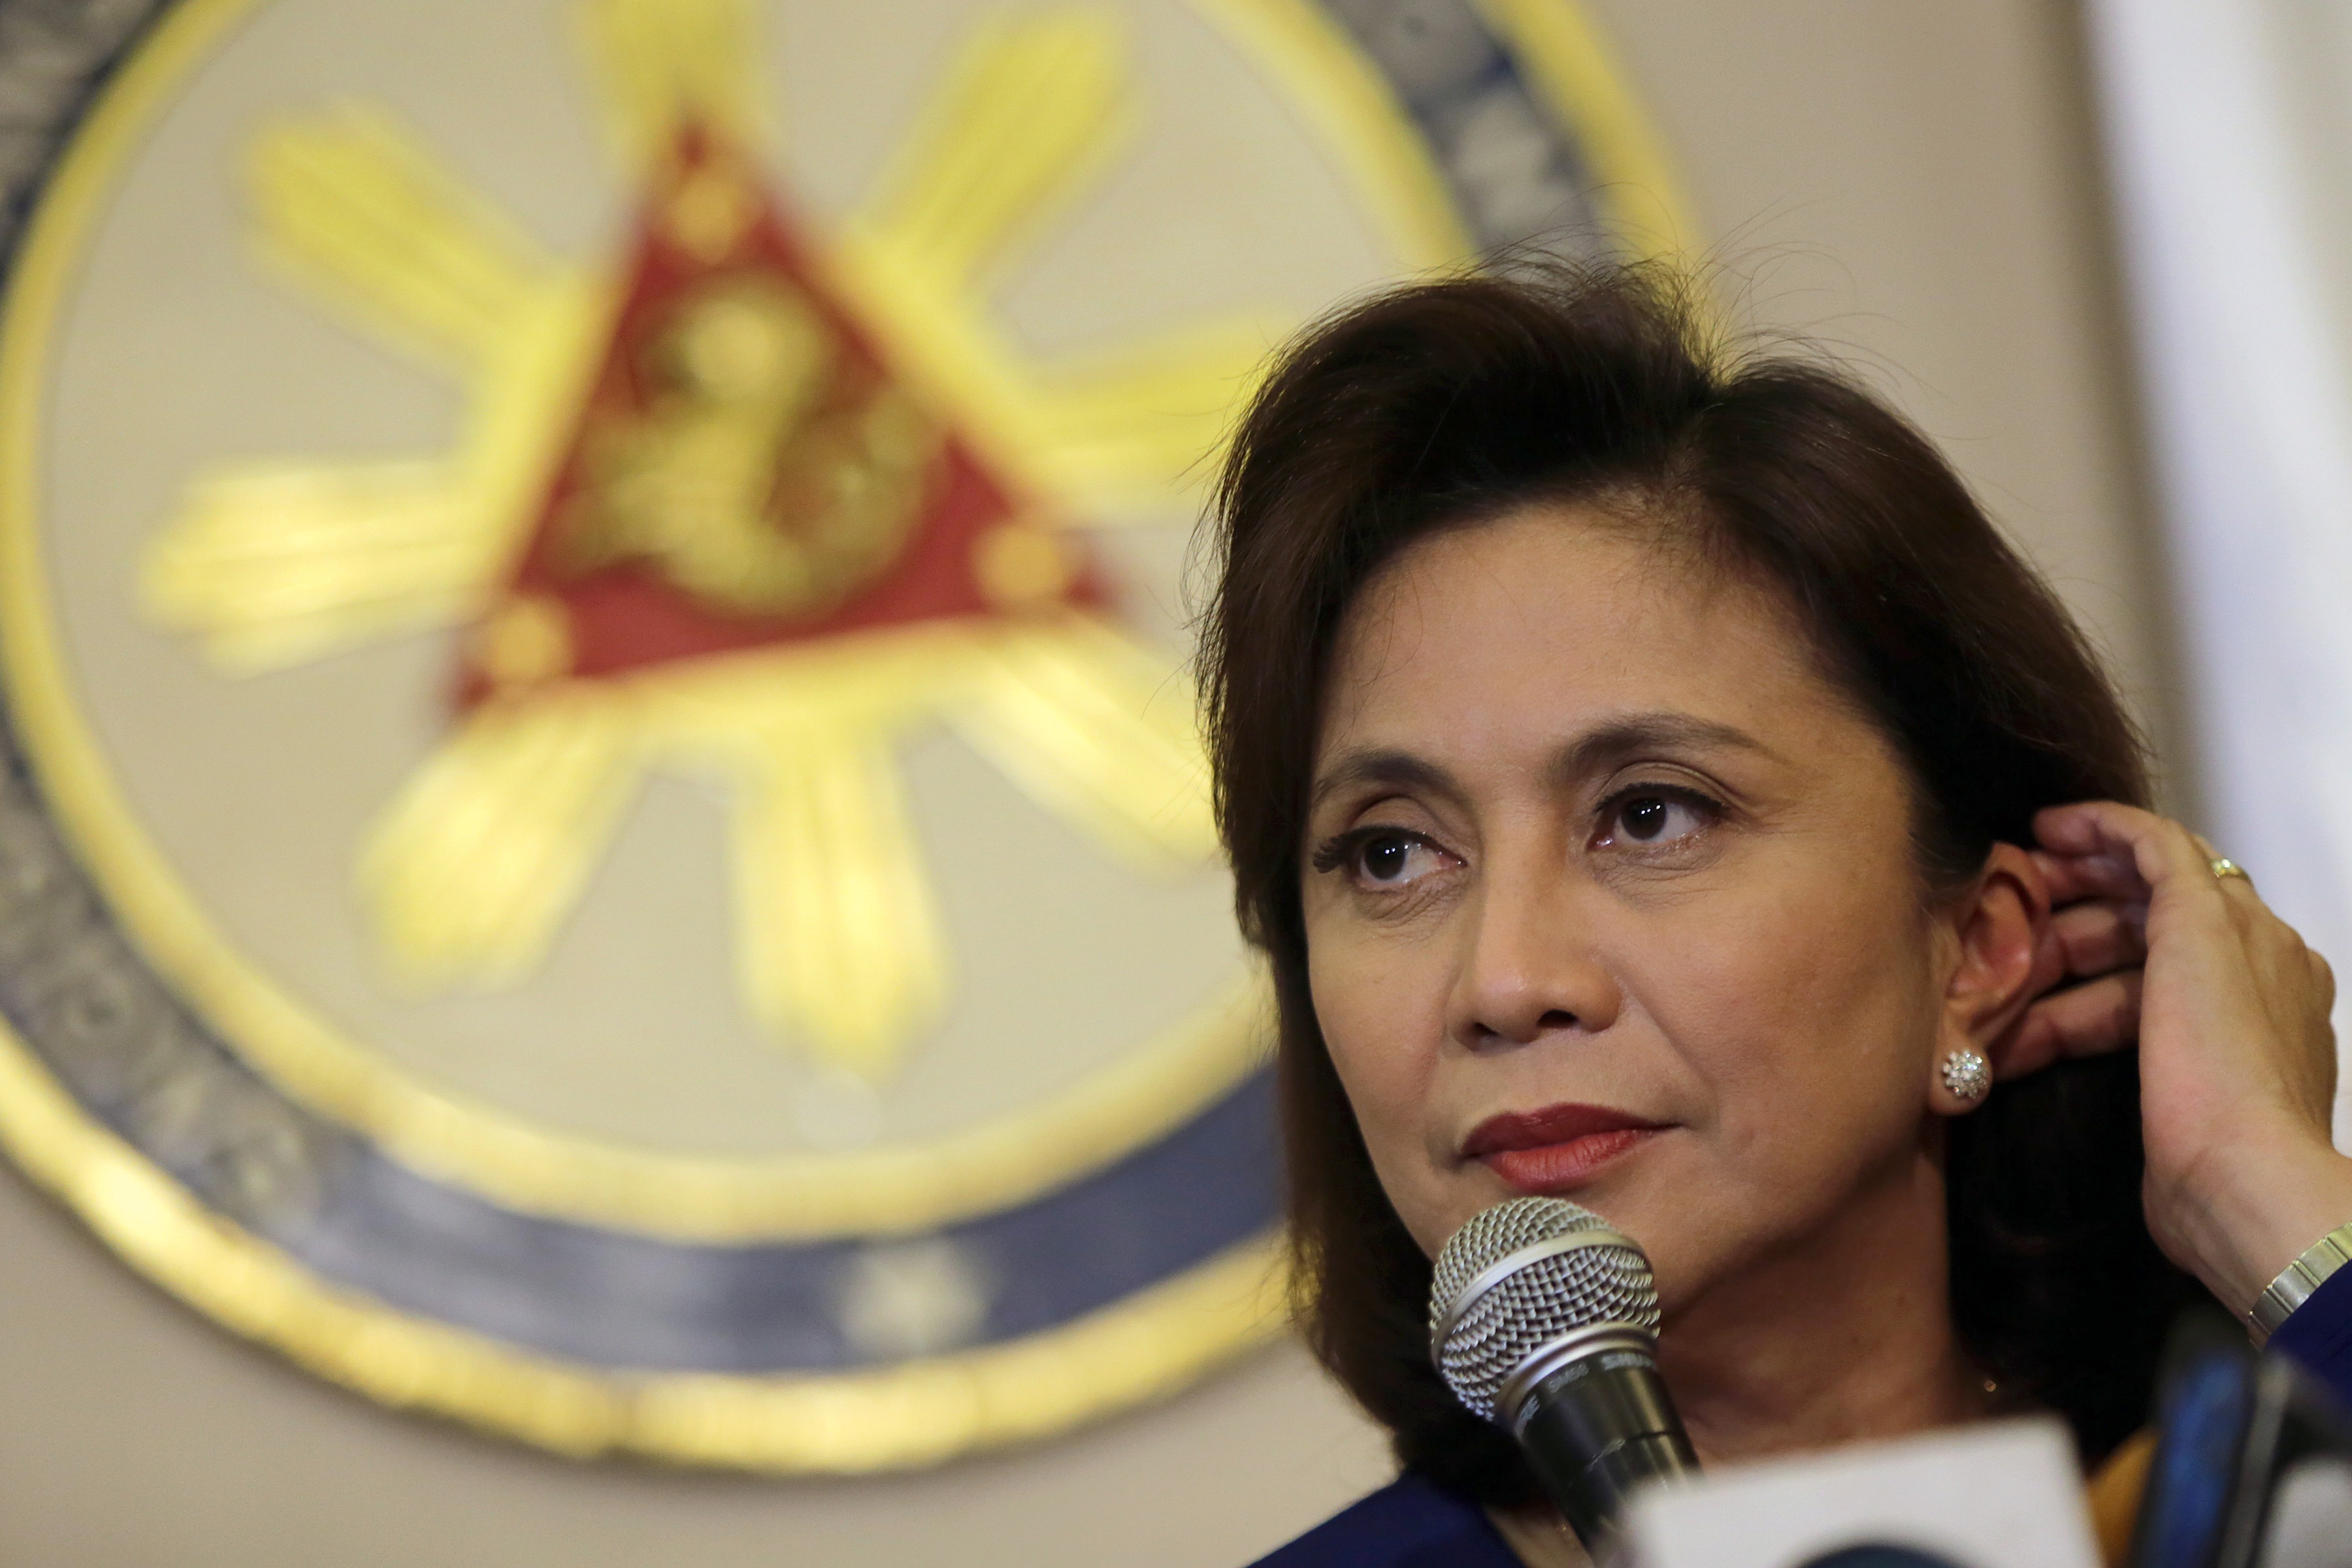 Philippine Vice President Leni Robredo speaks during a press conference in Quezon City, the Philippines, on Dec. 5, 2016